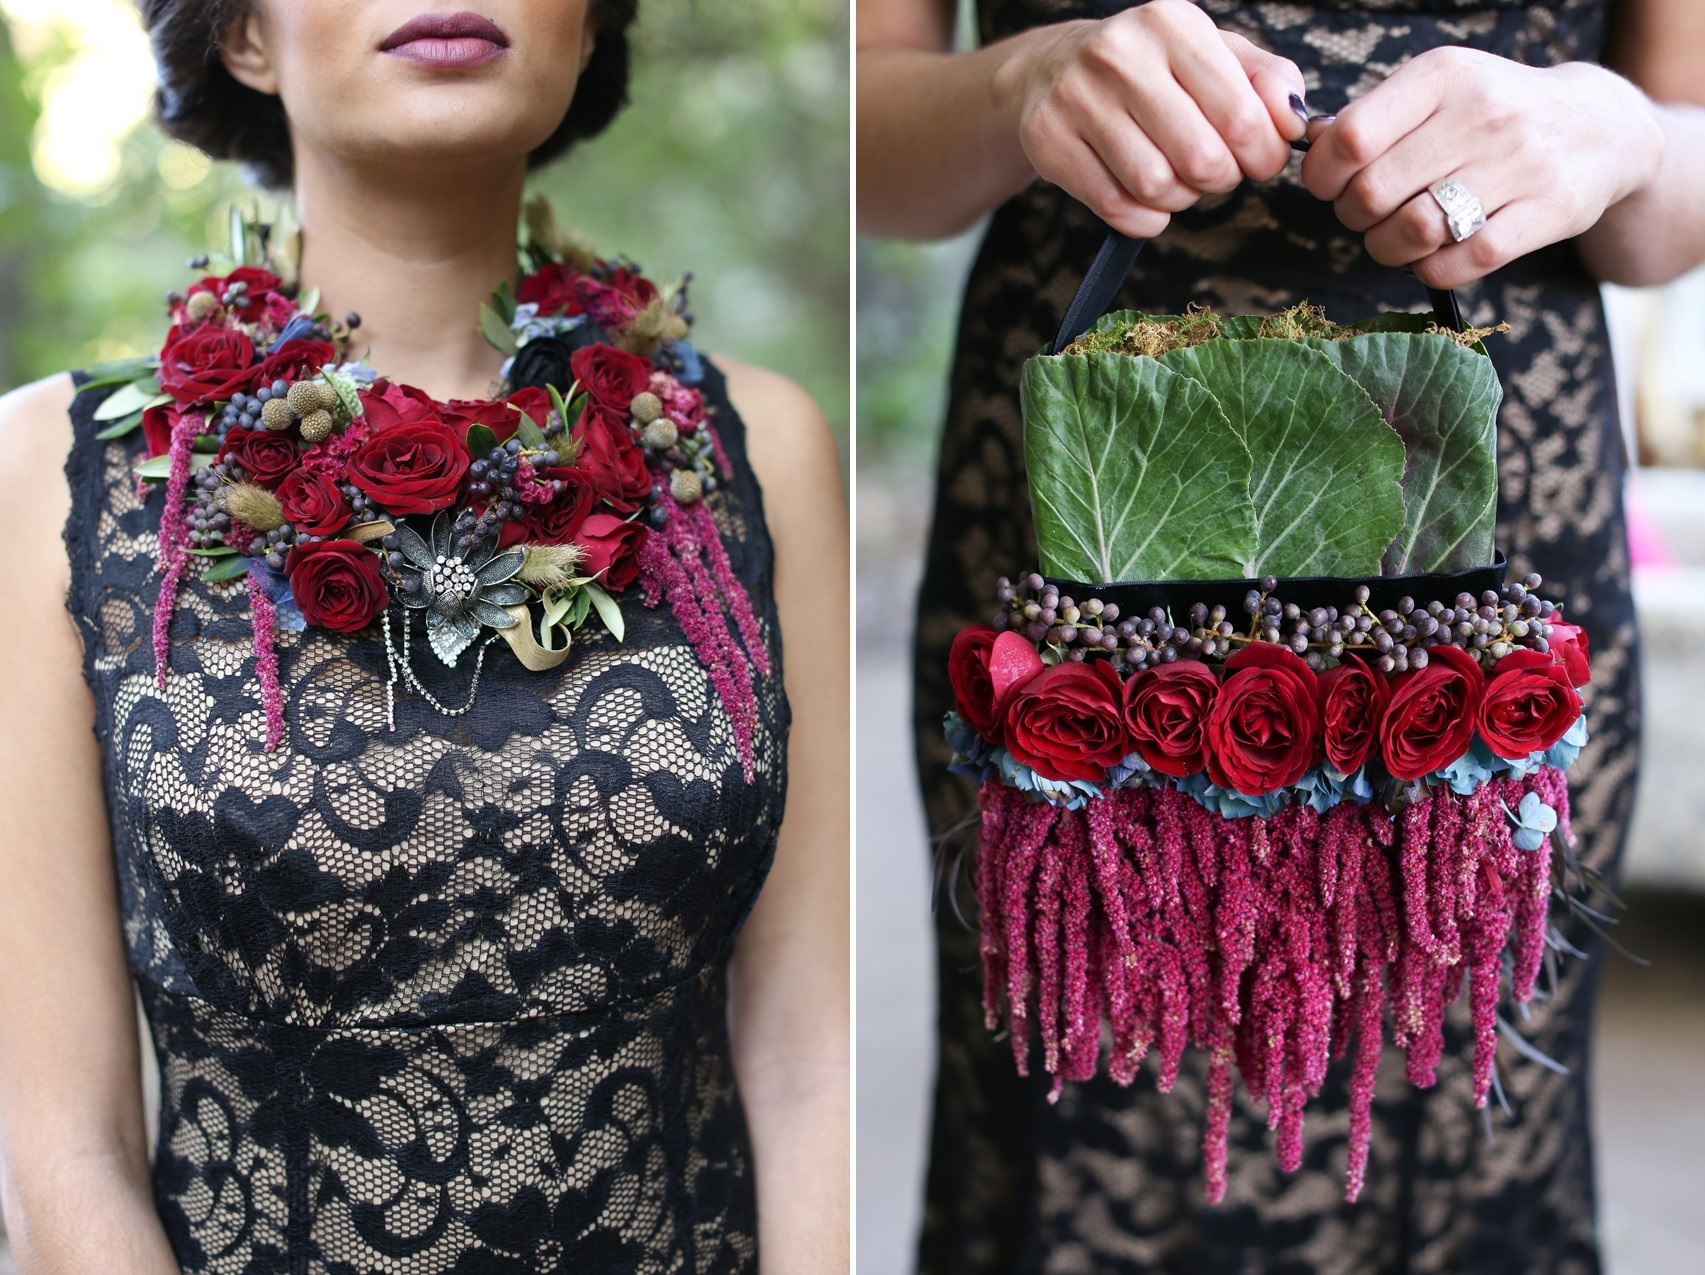 Floral Necklace & Handbag - Glamorous Wedding Inspiration with Opulent Fall Florals from Flora Fetish